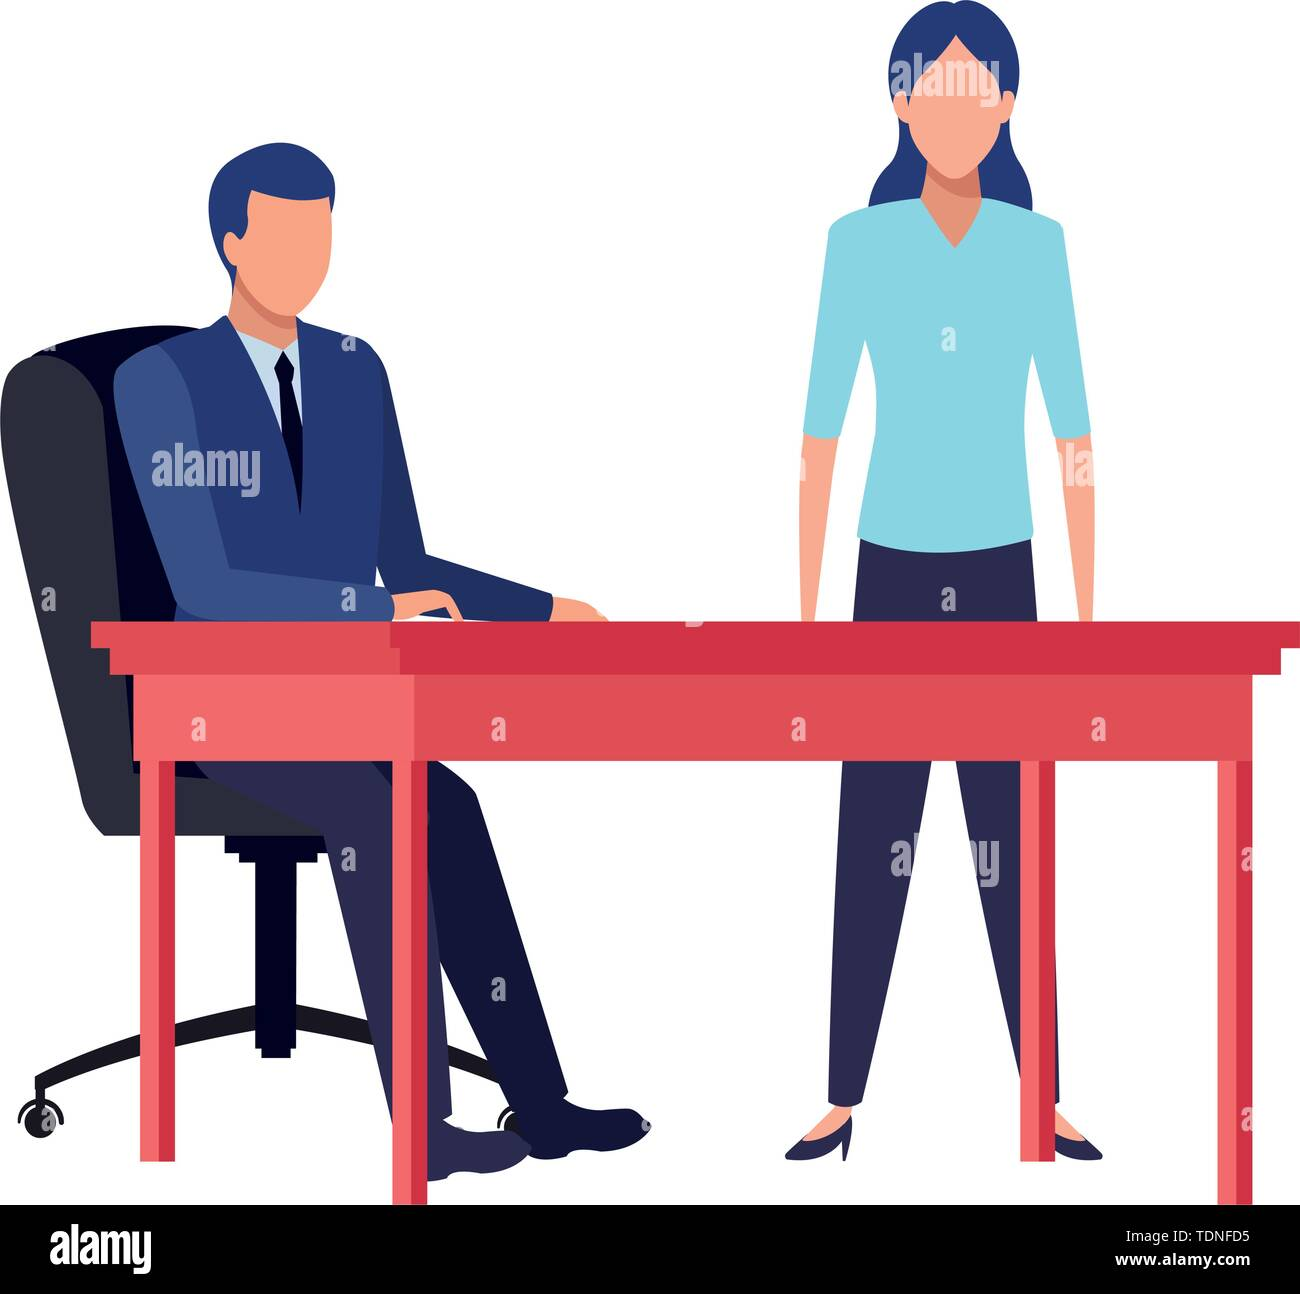 business business people businessman sitting on a desk avatar cartoon character vector illustration graphic design - Stock Image